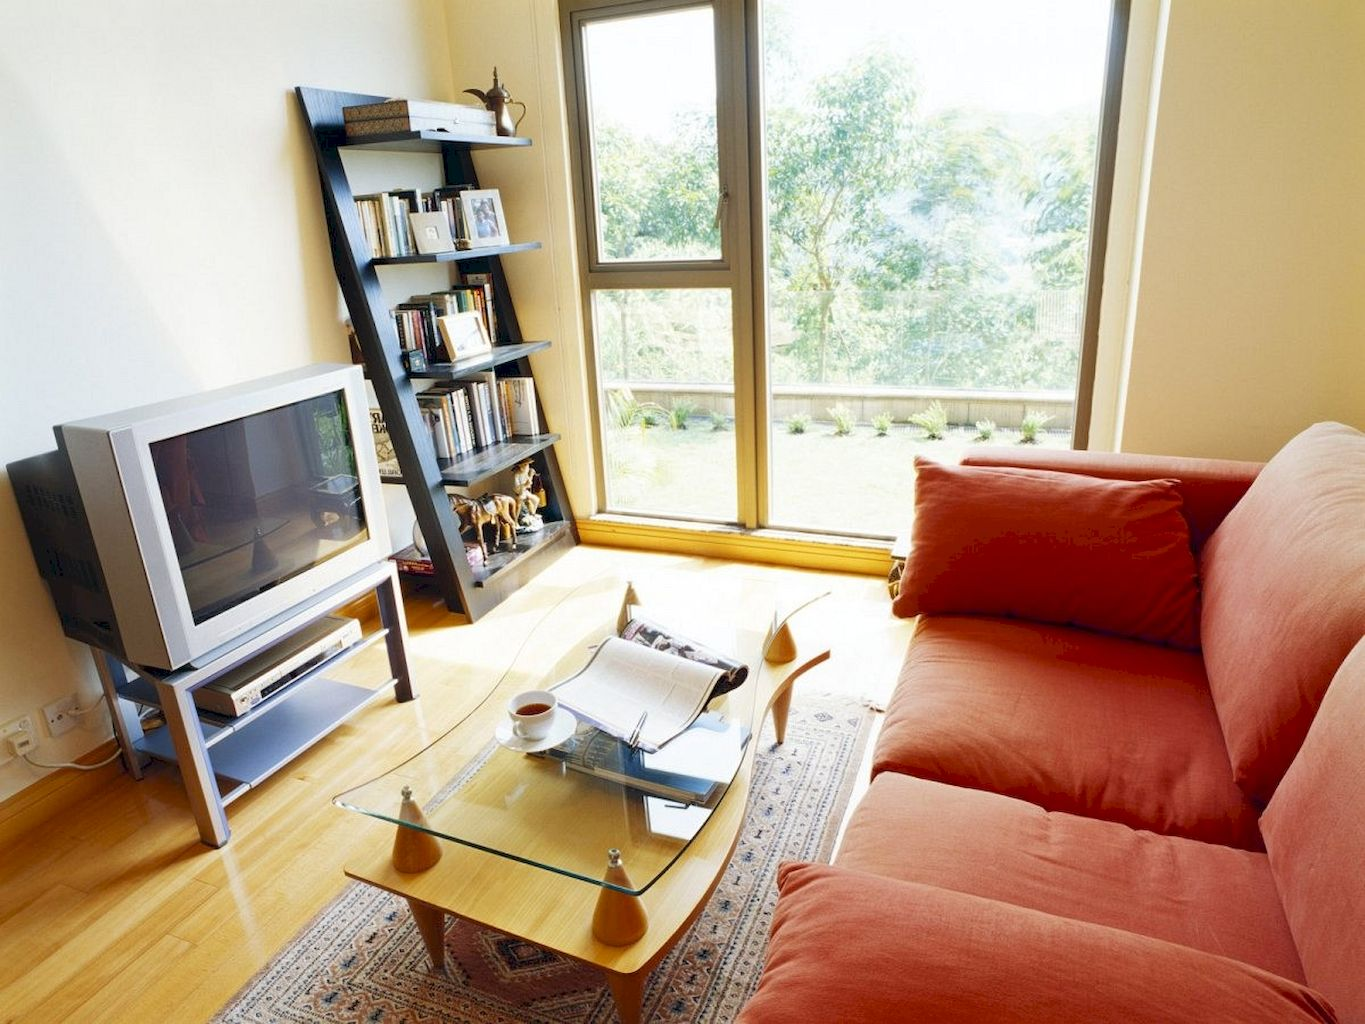 DIY Apartment Living Room Layout and Decor Part 6